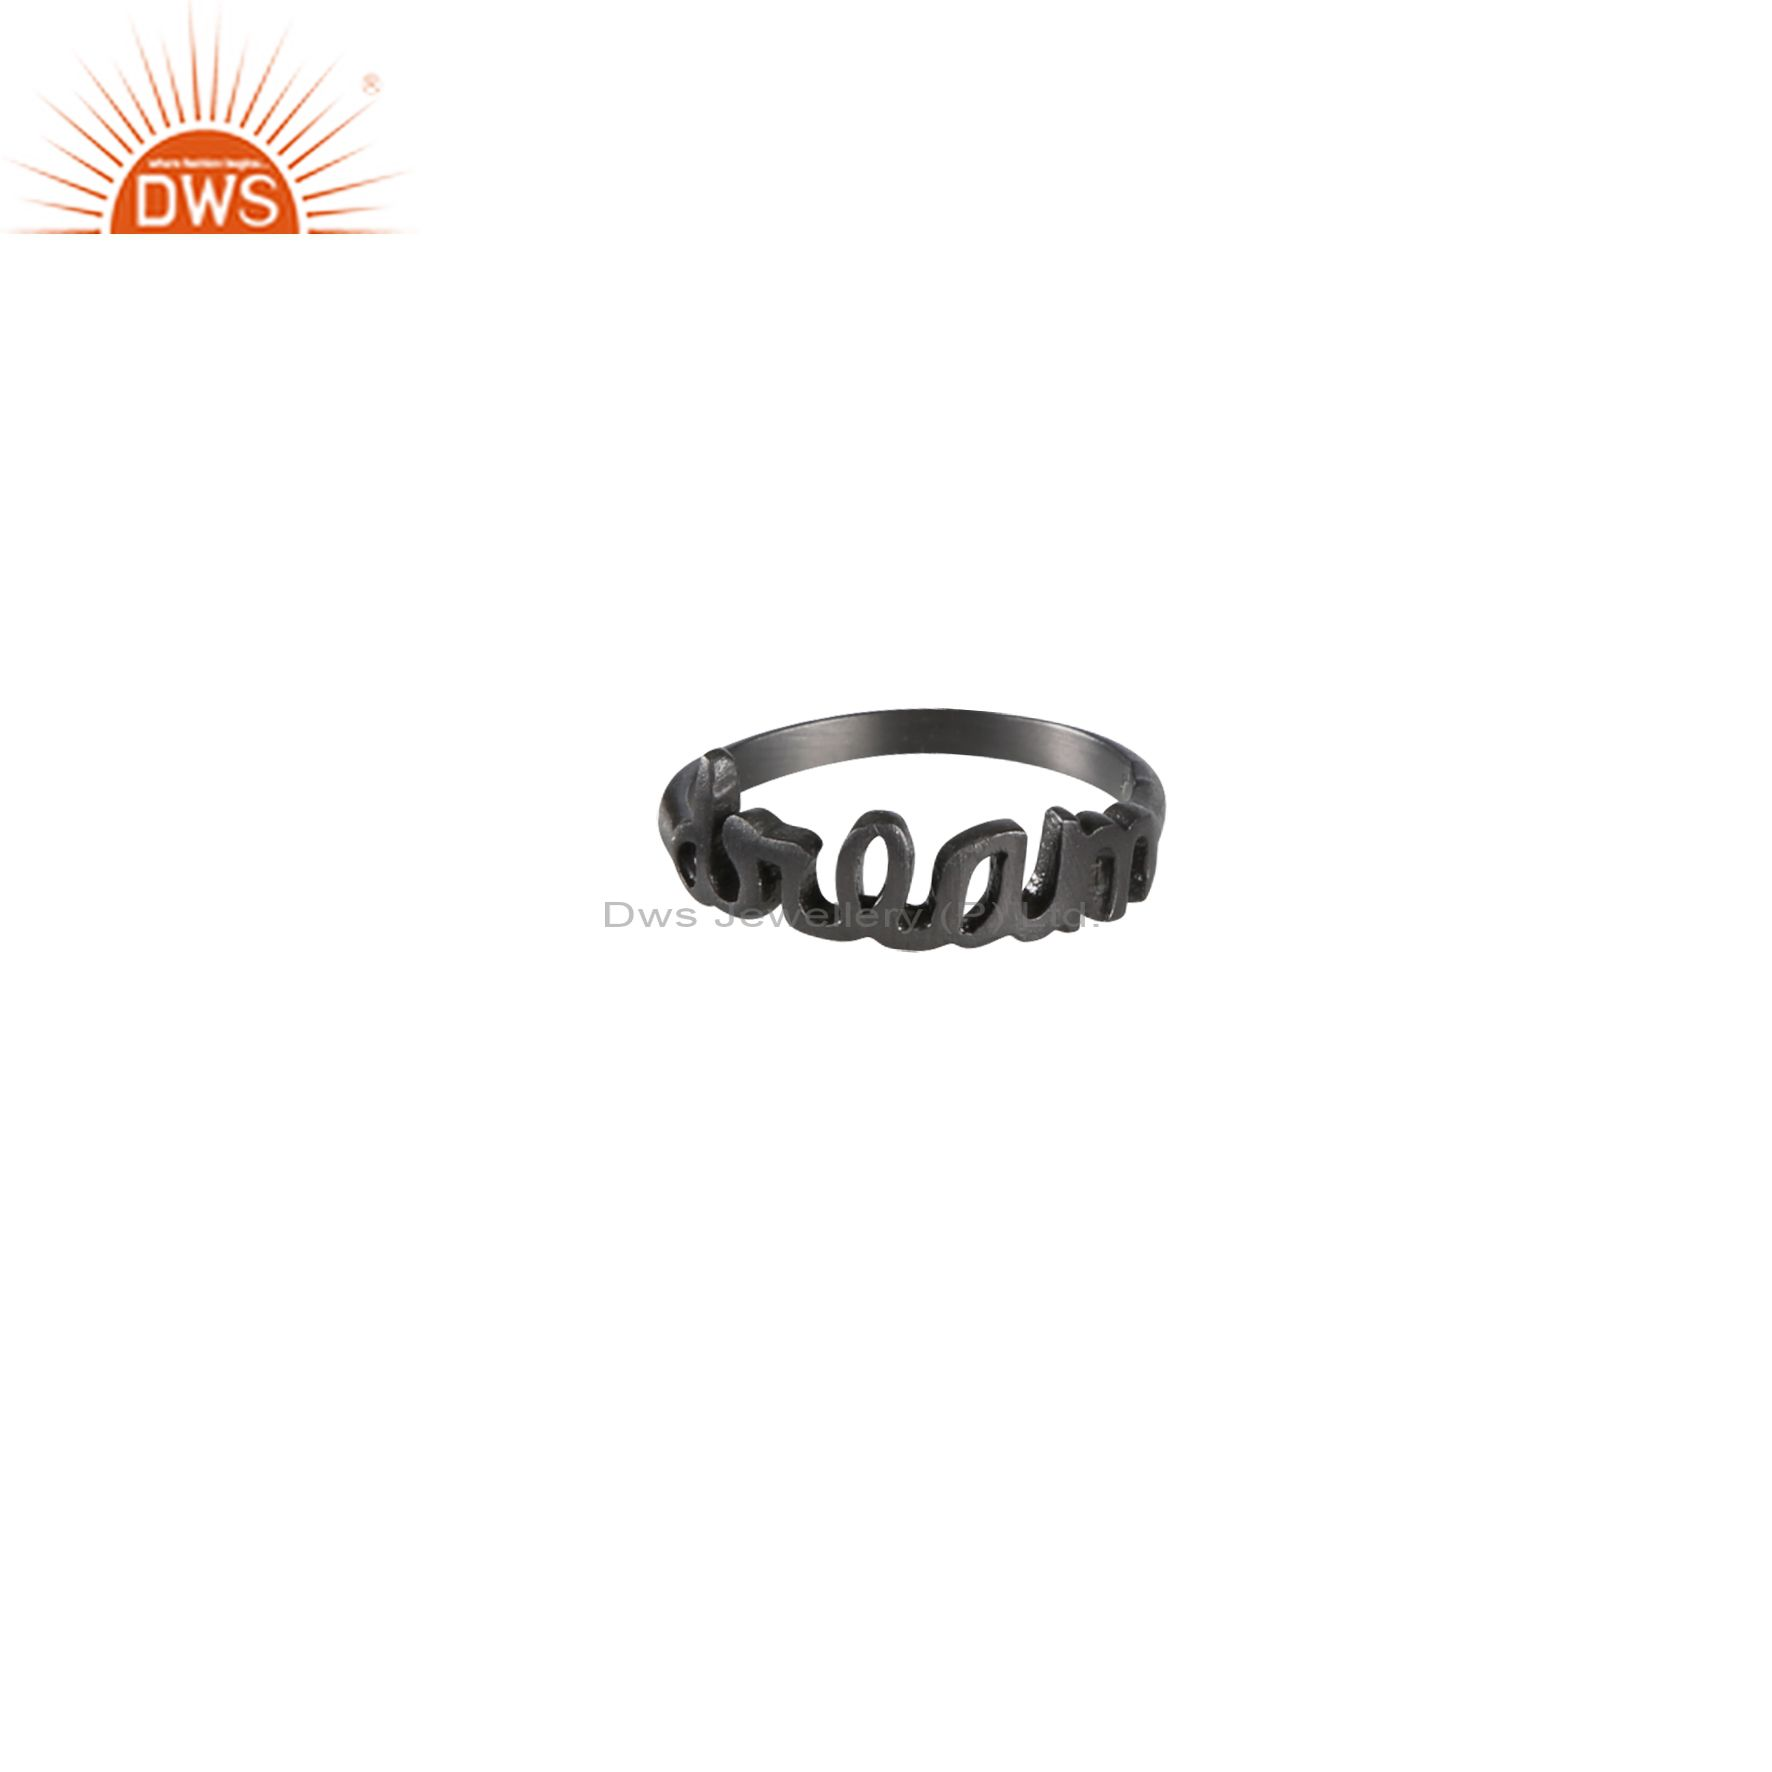 Oxidized Solid Sterling Silver Cursive Style Font Dream Ring